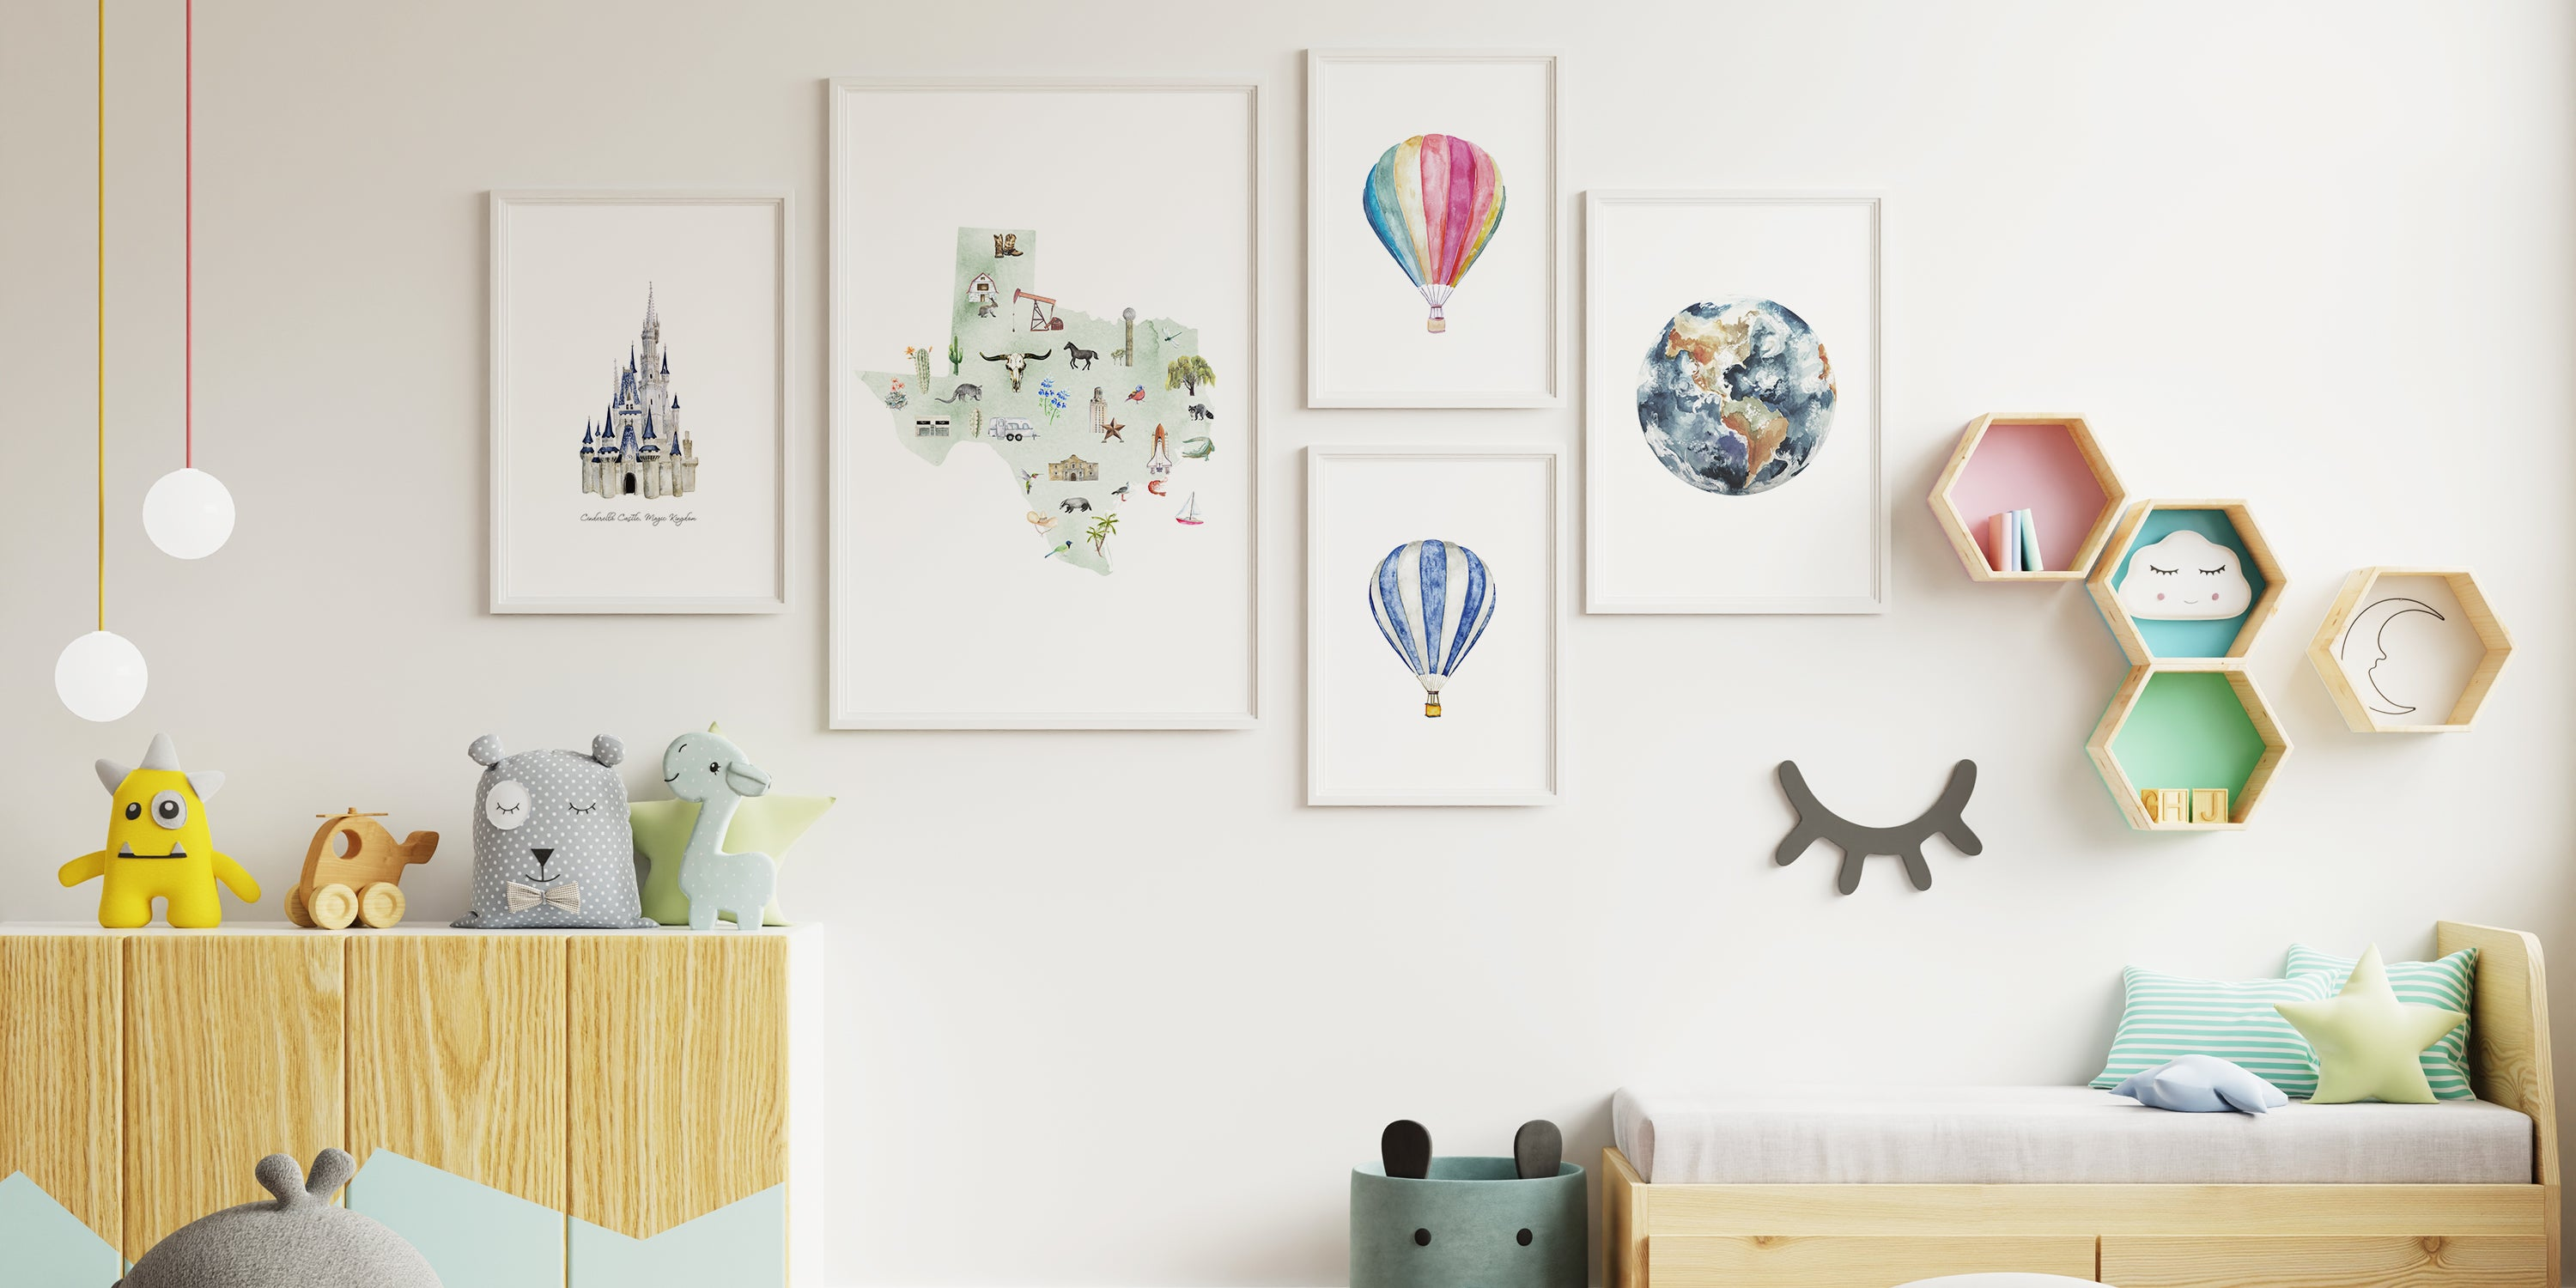 How to Design a Nursery Gallery Wall